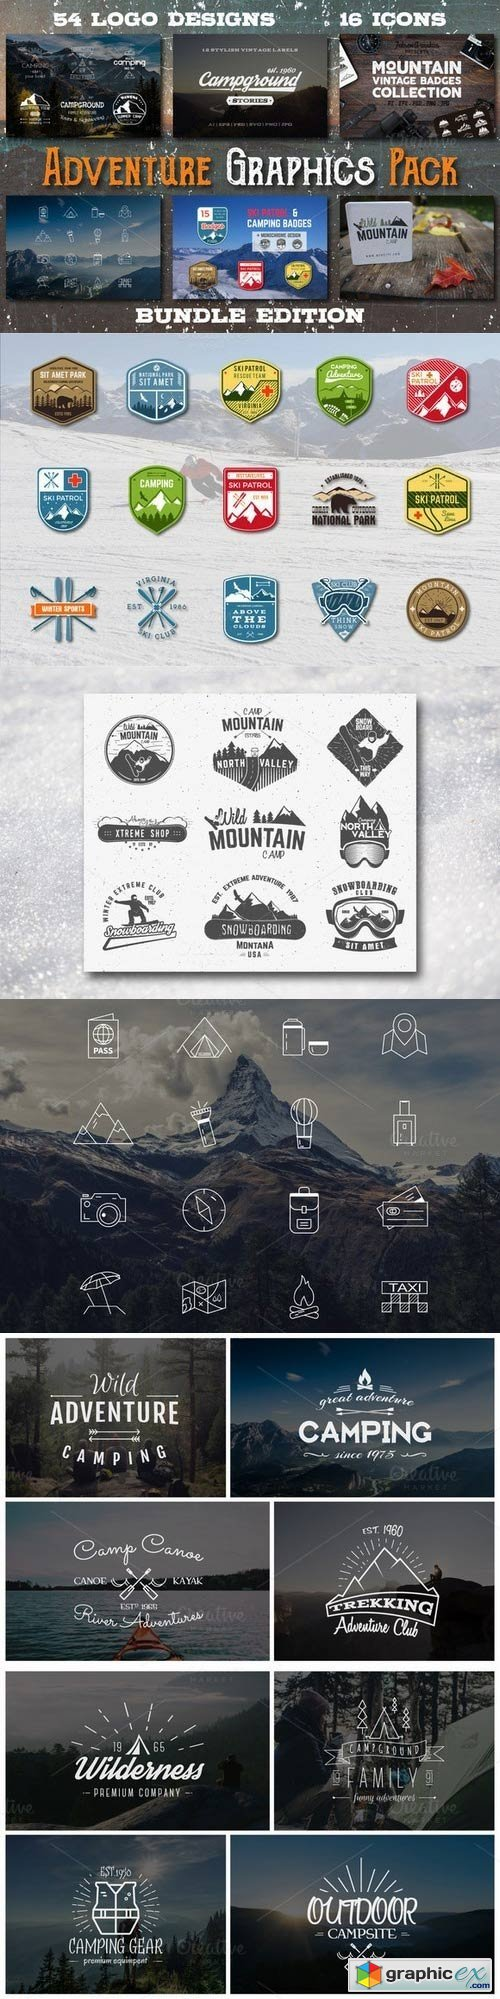 Adventure Graphics Pack » Free Download Vector Stock Image